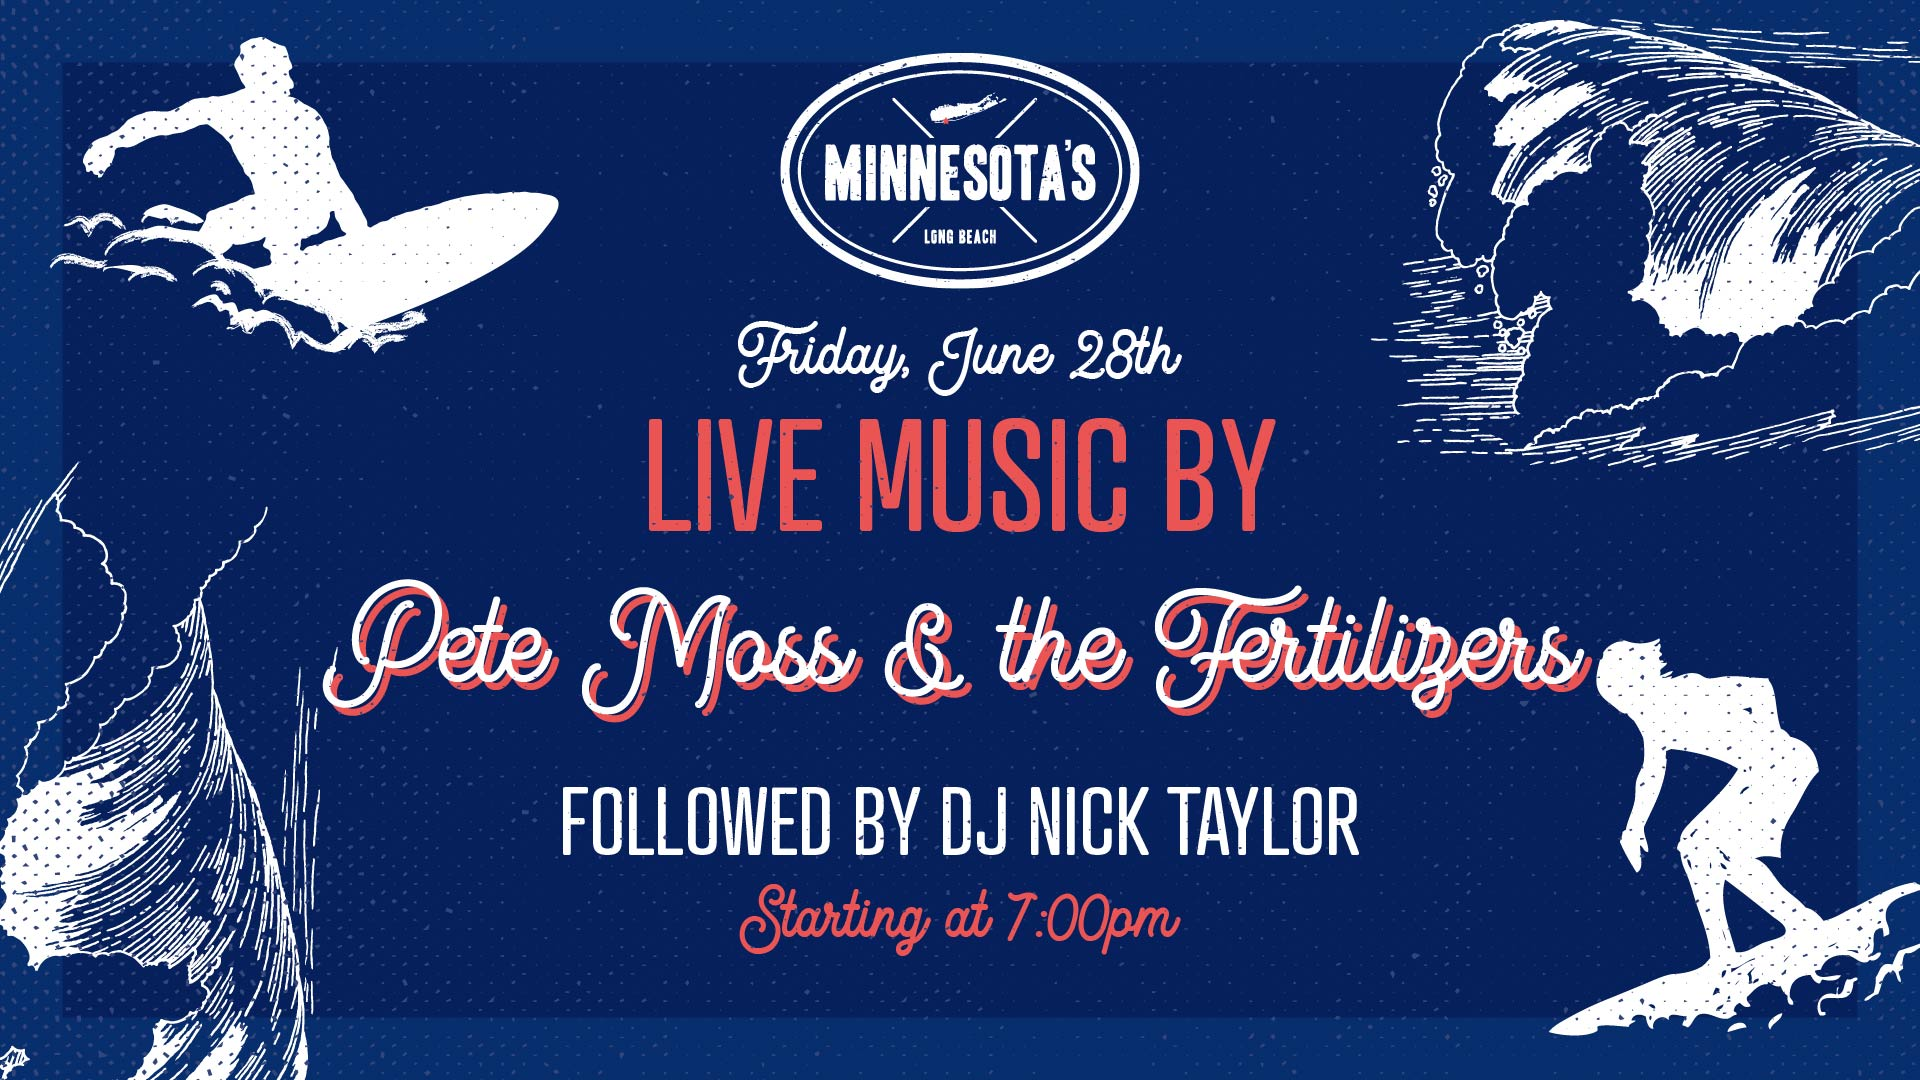 flyer for live music by pete moss and the fertilizers followed by DJ nick taylor at minnesotas on june 28th at 7pm